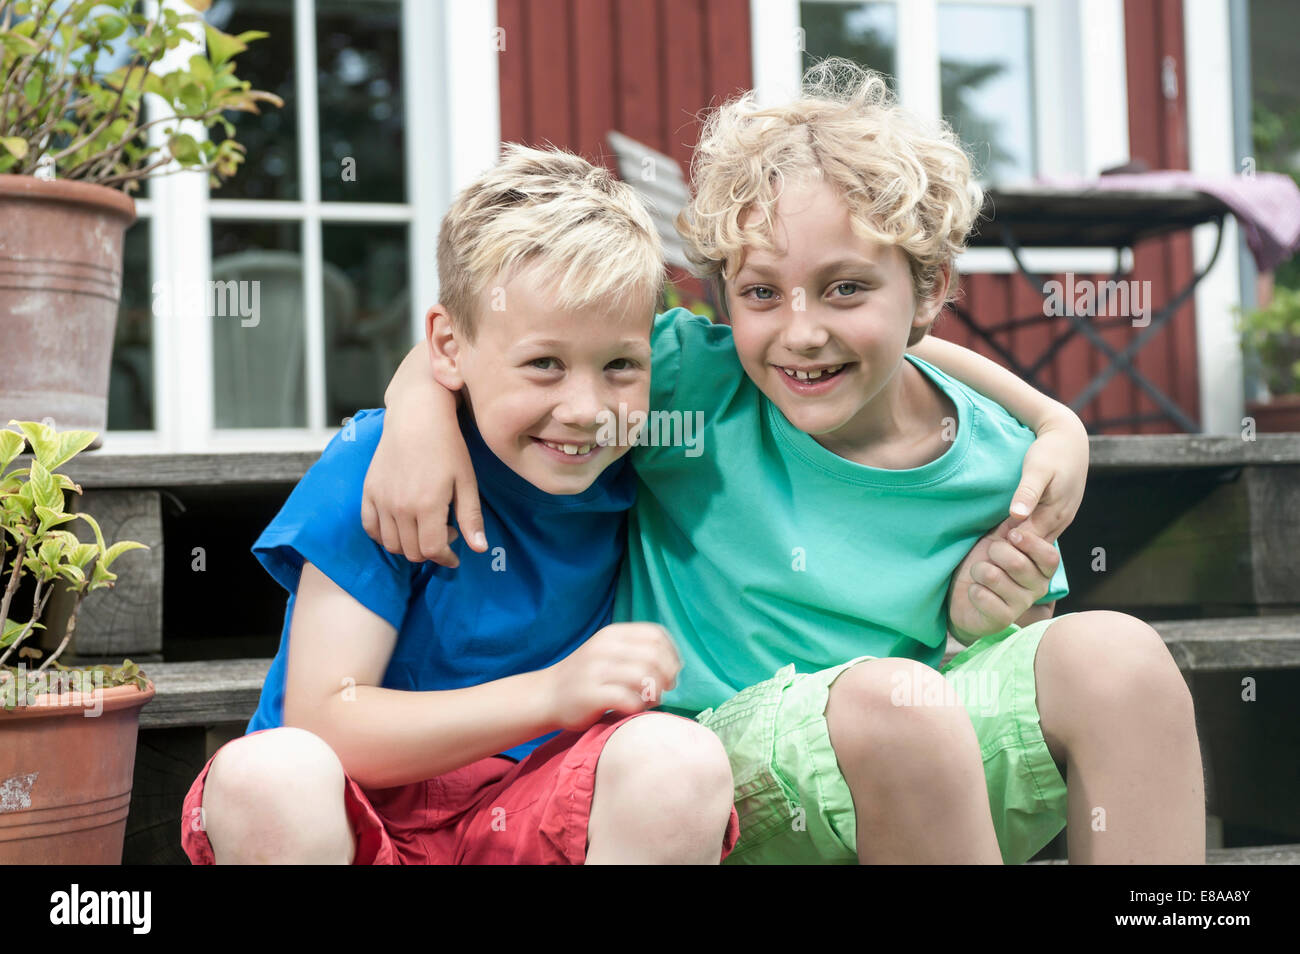 Friends young boys sitting steps house smiling Stock Photo